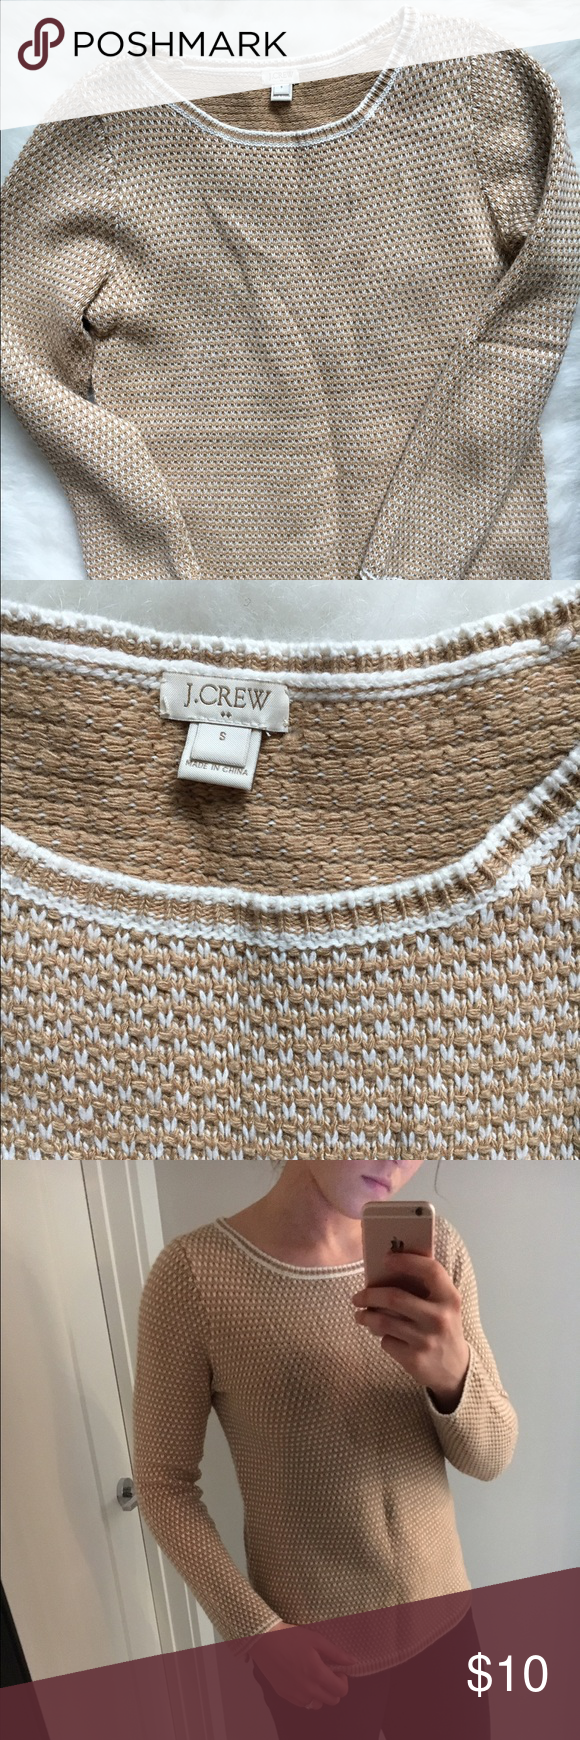 Knit Sweater This J.Crew Sweater is a favorite of mine! Crease is just from how sweater is folded. J. Crew Sweaters Crew & Scoop Necks